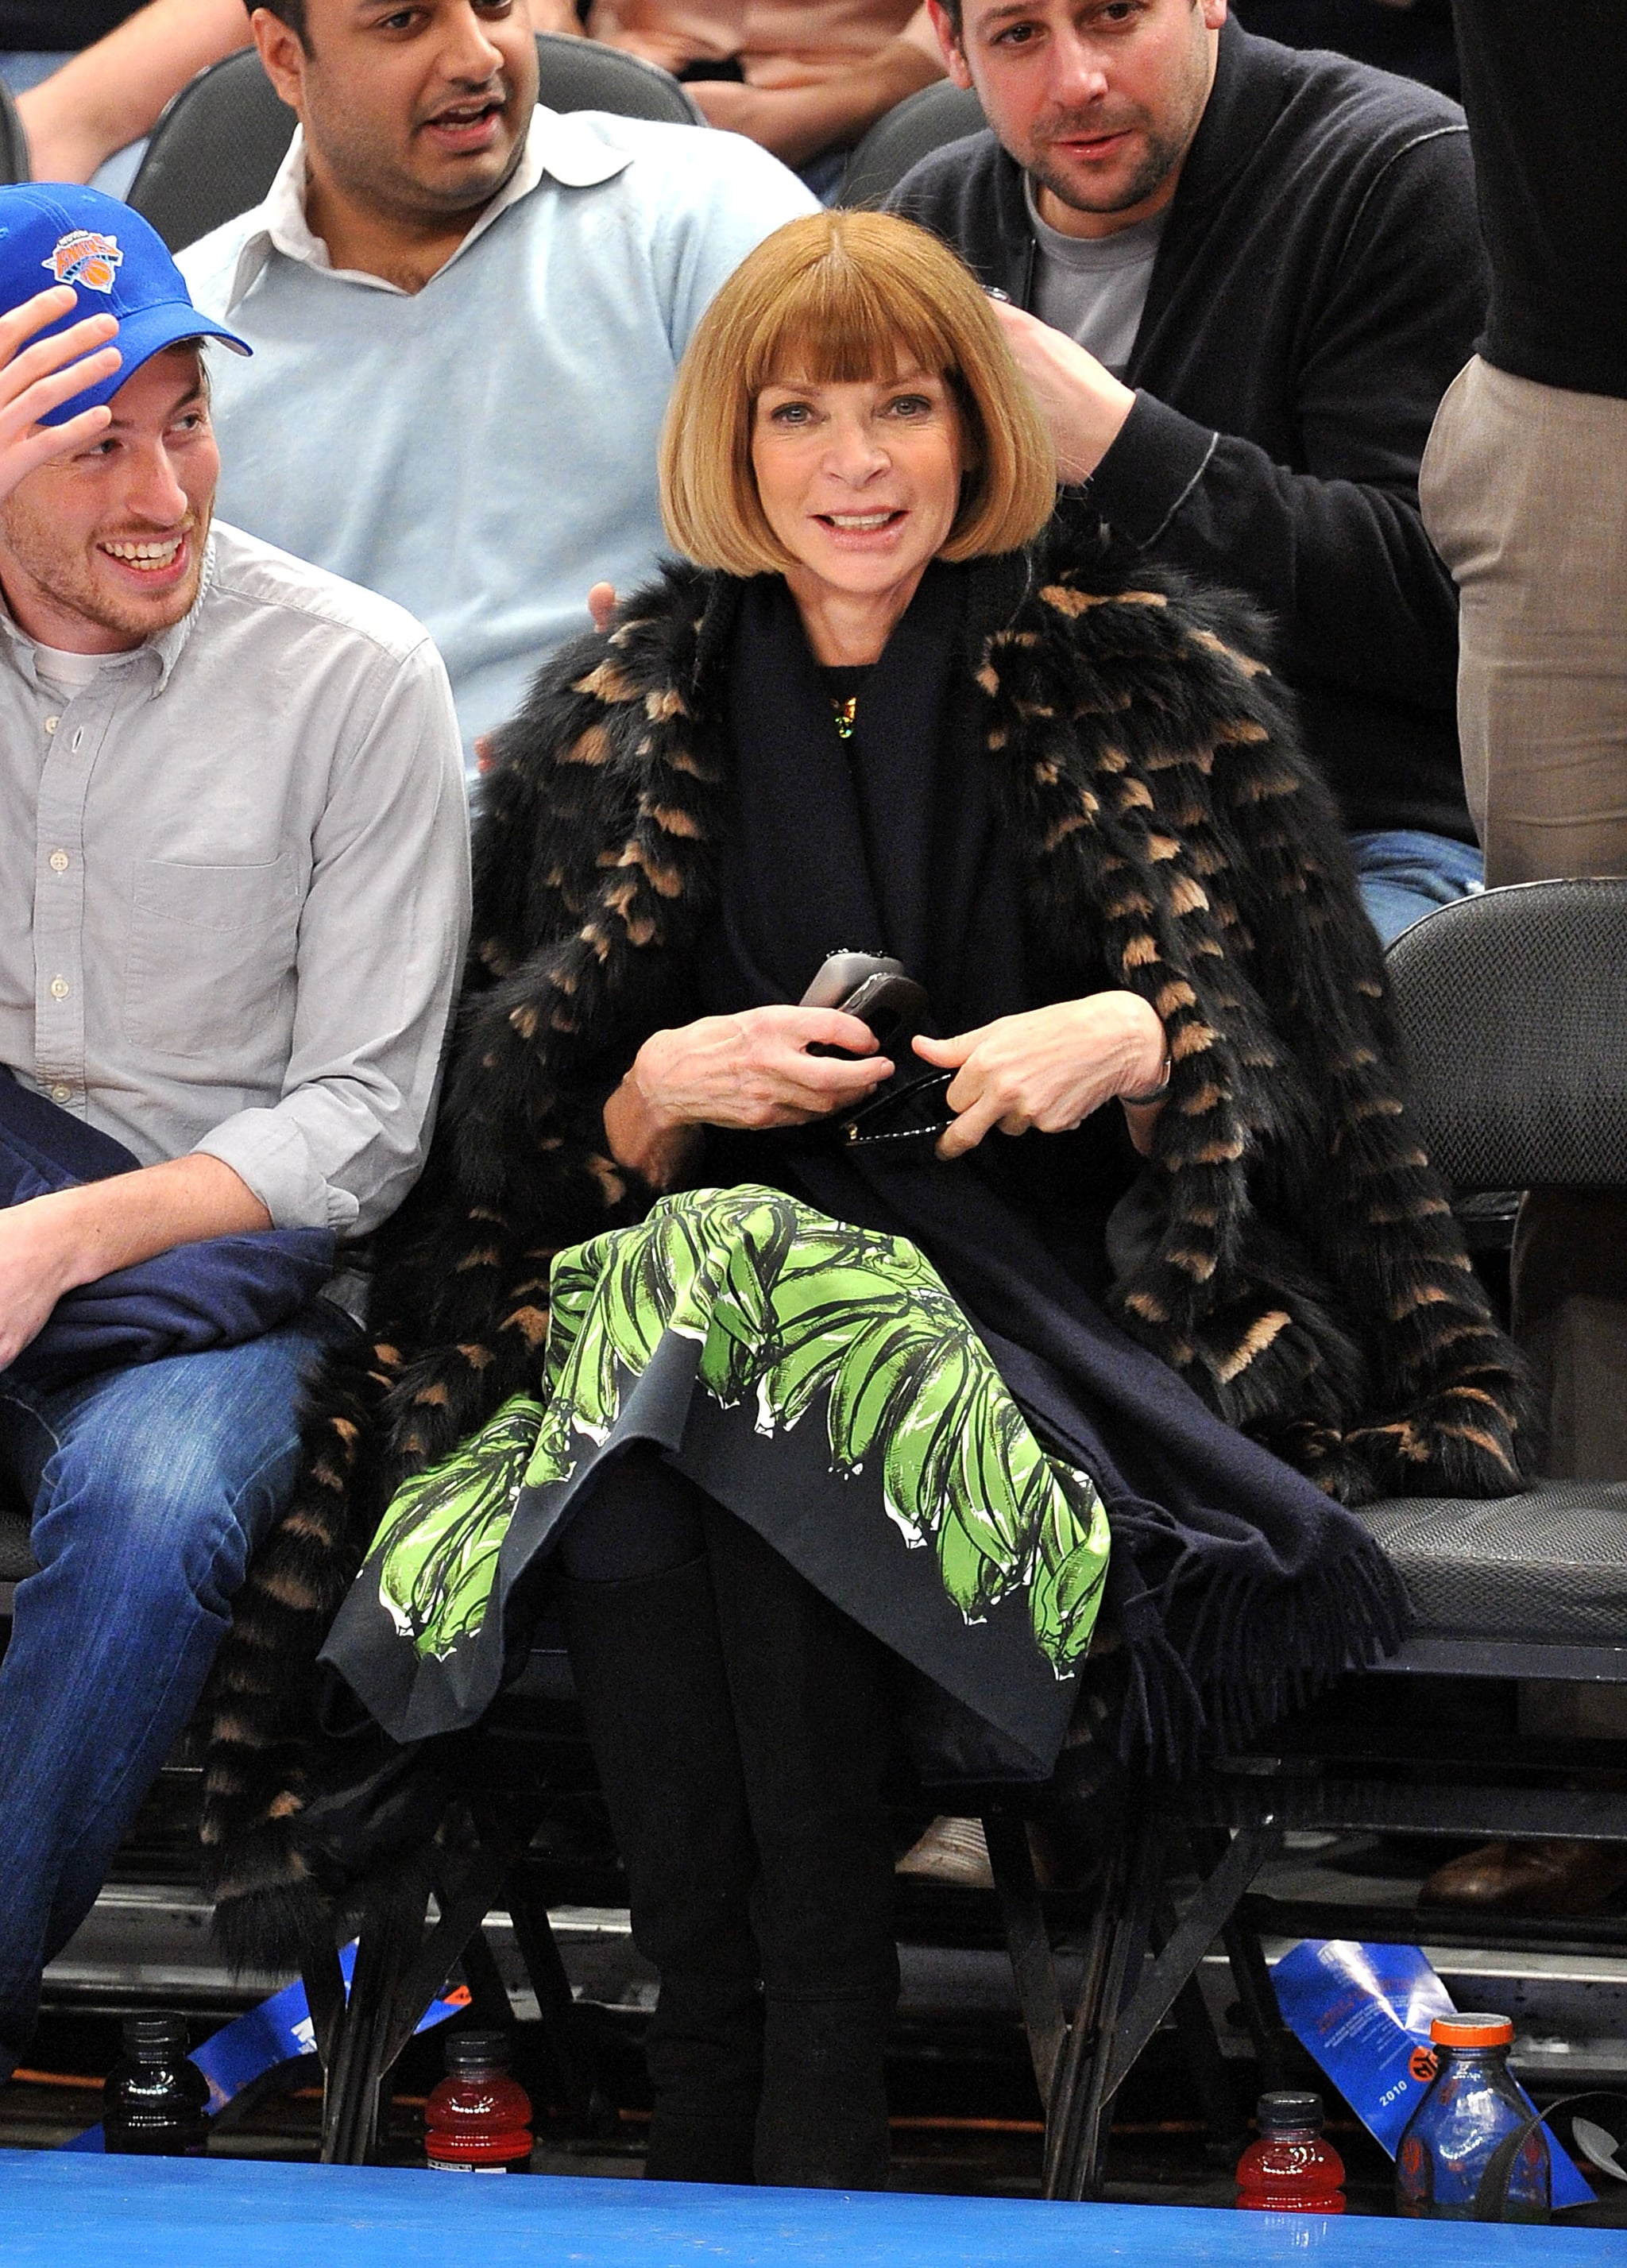 Anna Wintour sat courtside for a February 2011 Knicks game in the exact way you would expect her to: looking fabulous and chic in a printed skirt and fur coat.